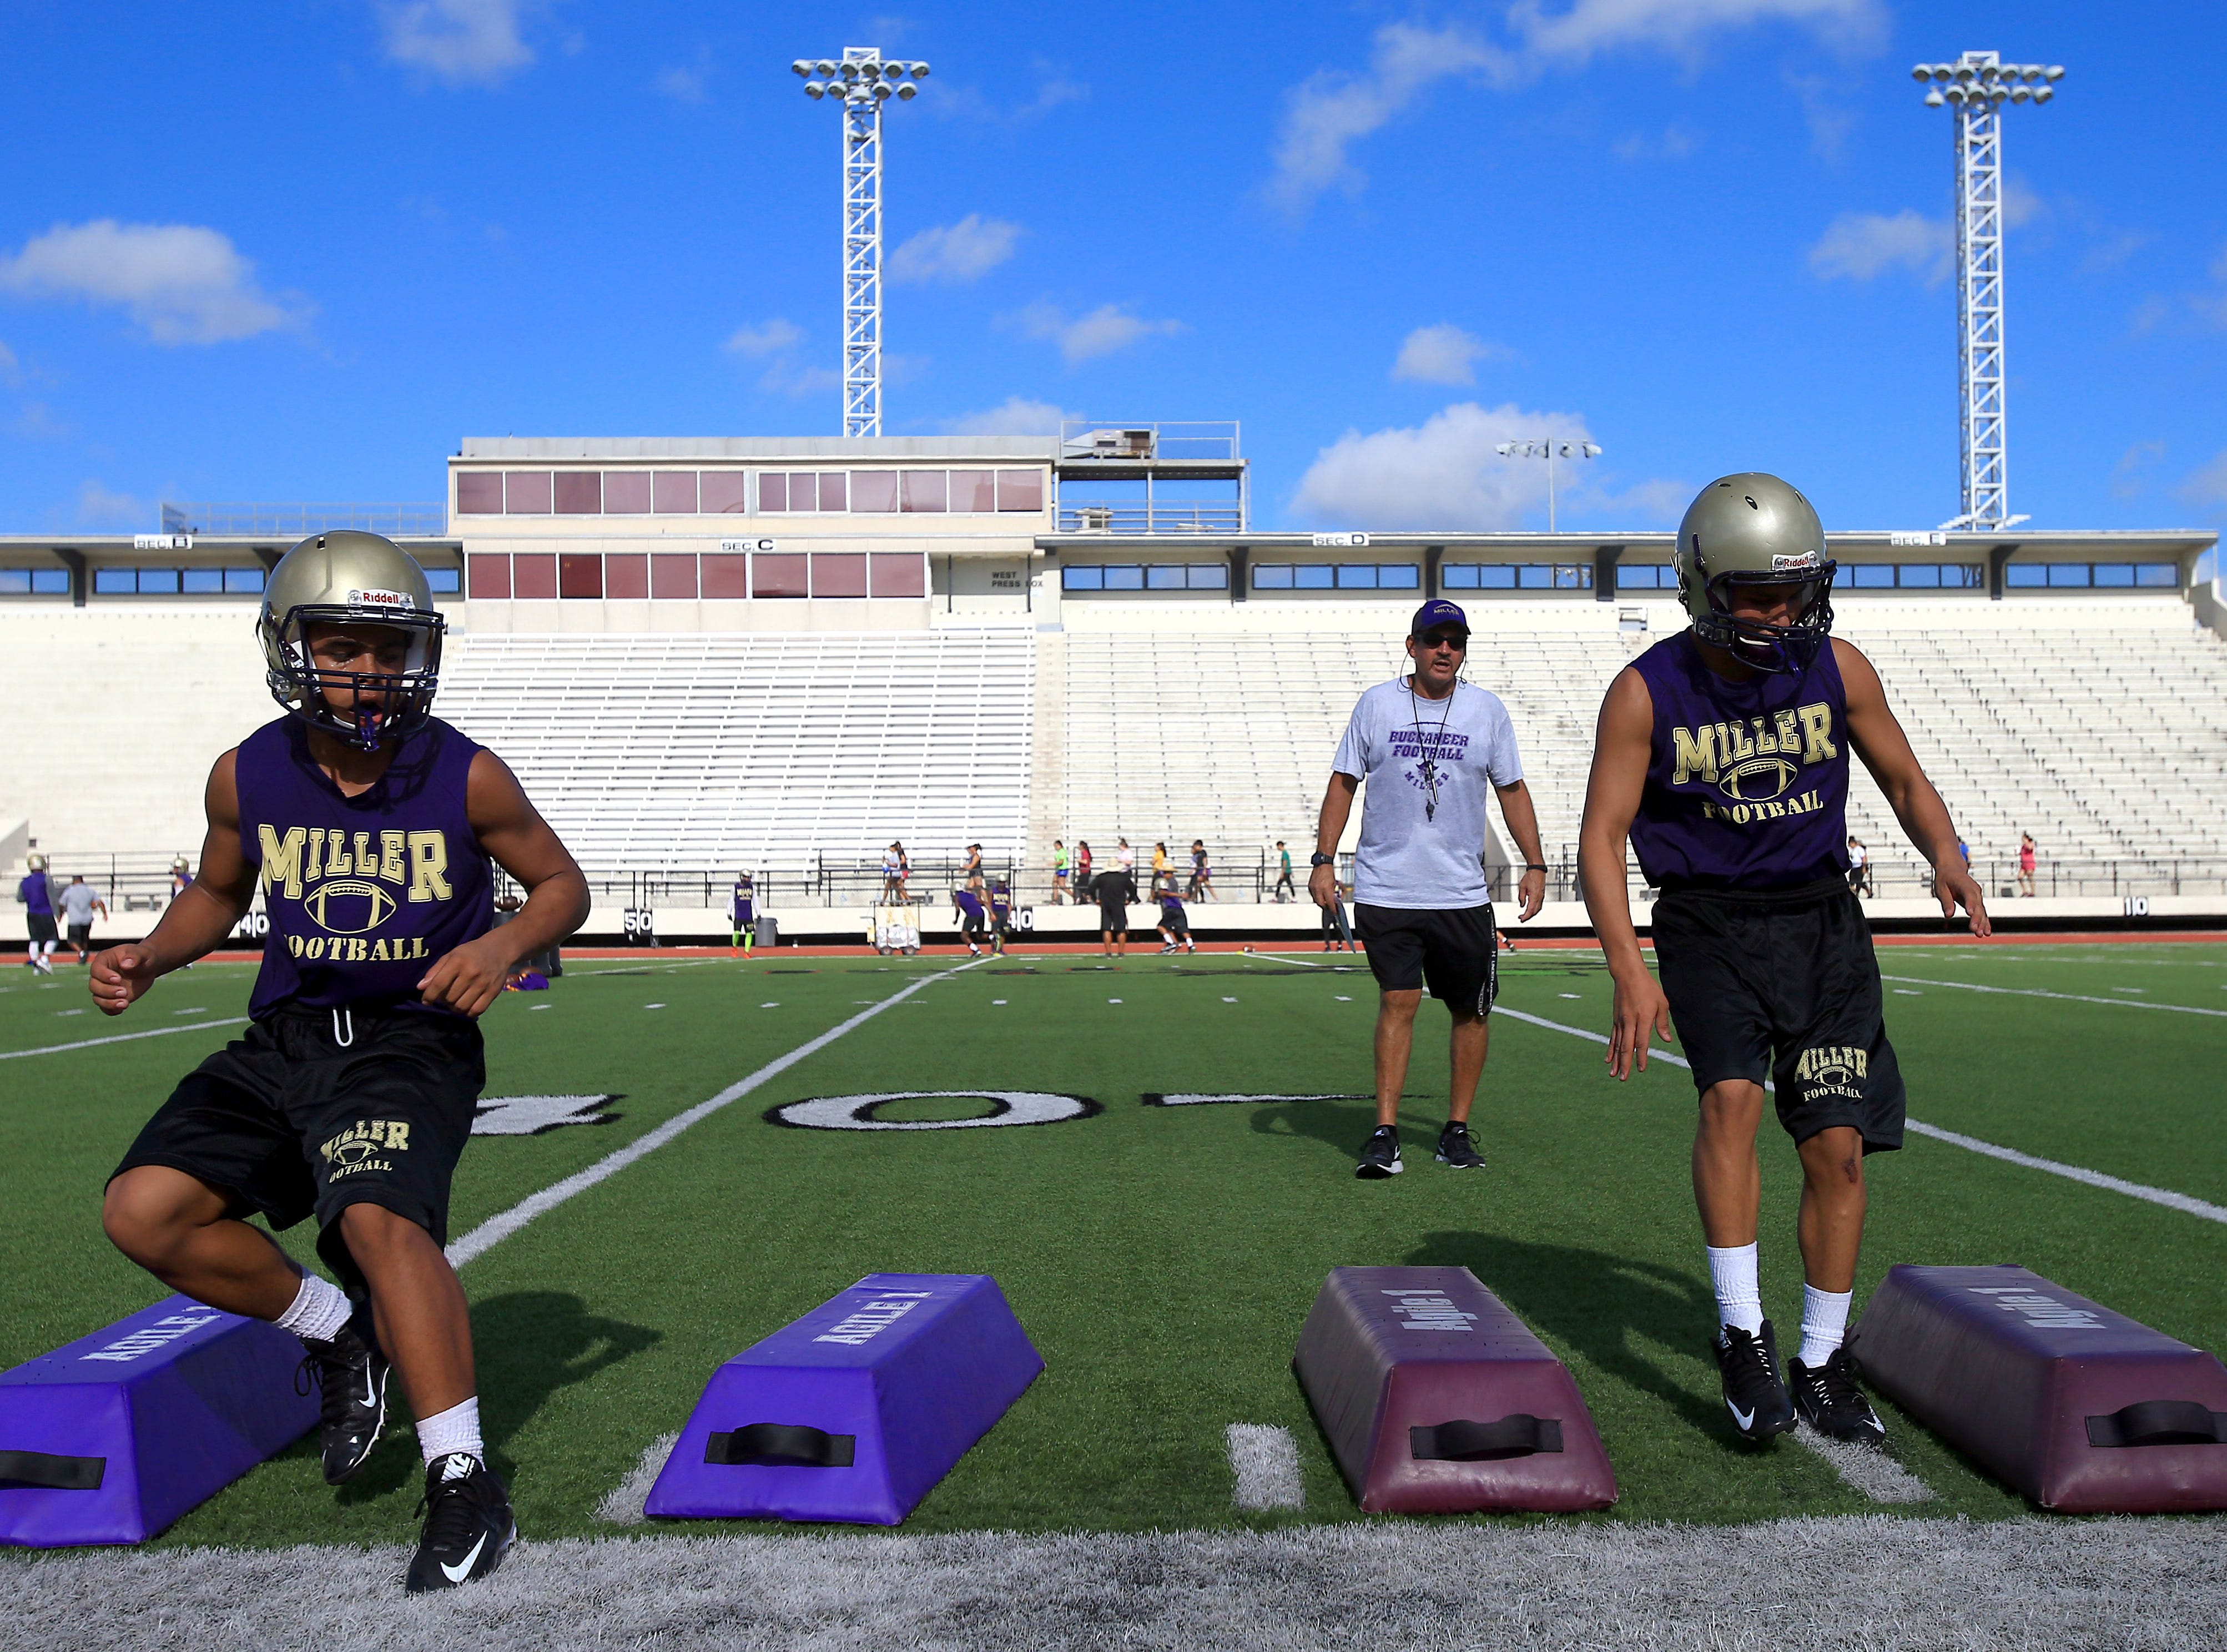 Miller players run through drills during practice Thursday, Aug. 4, 2016, at Buc Stadium in Corpus Christi.